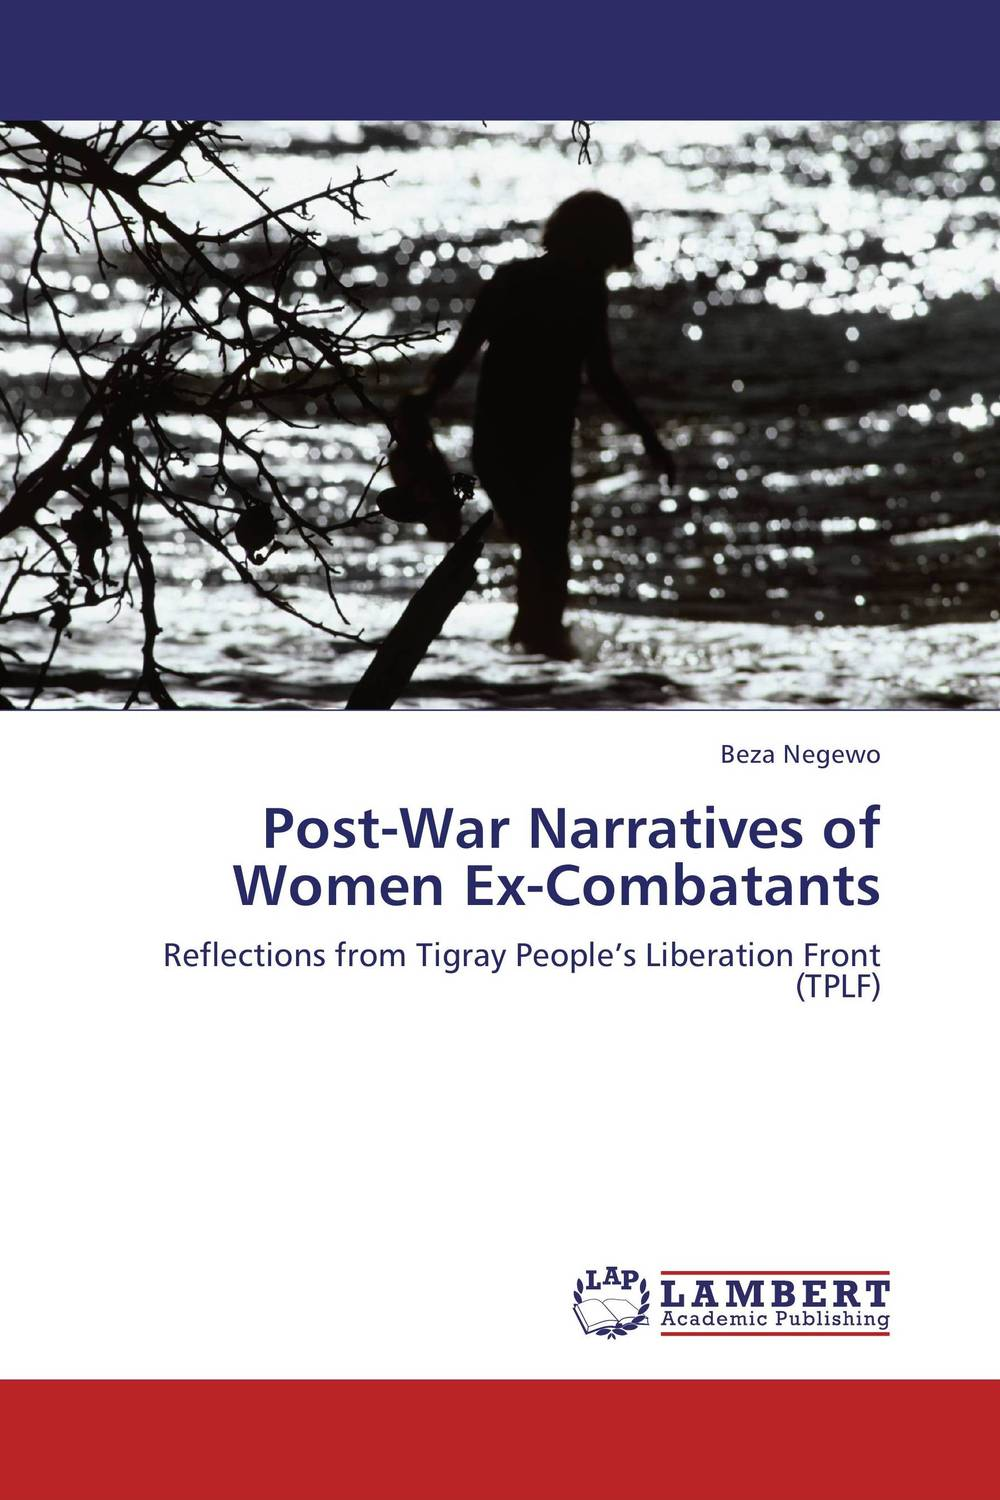 Post-War Narratives of Women Ex-Combatants elena fishtik sara laws are keeping silence during the war